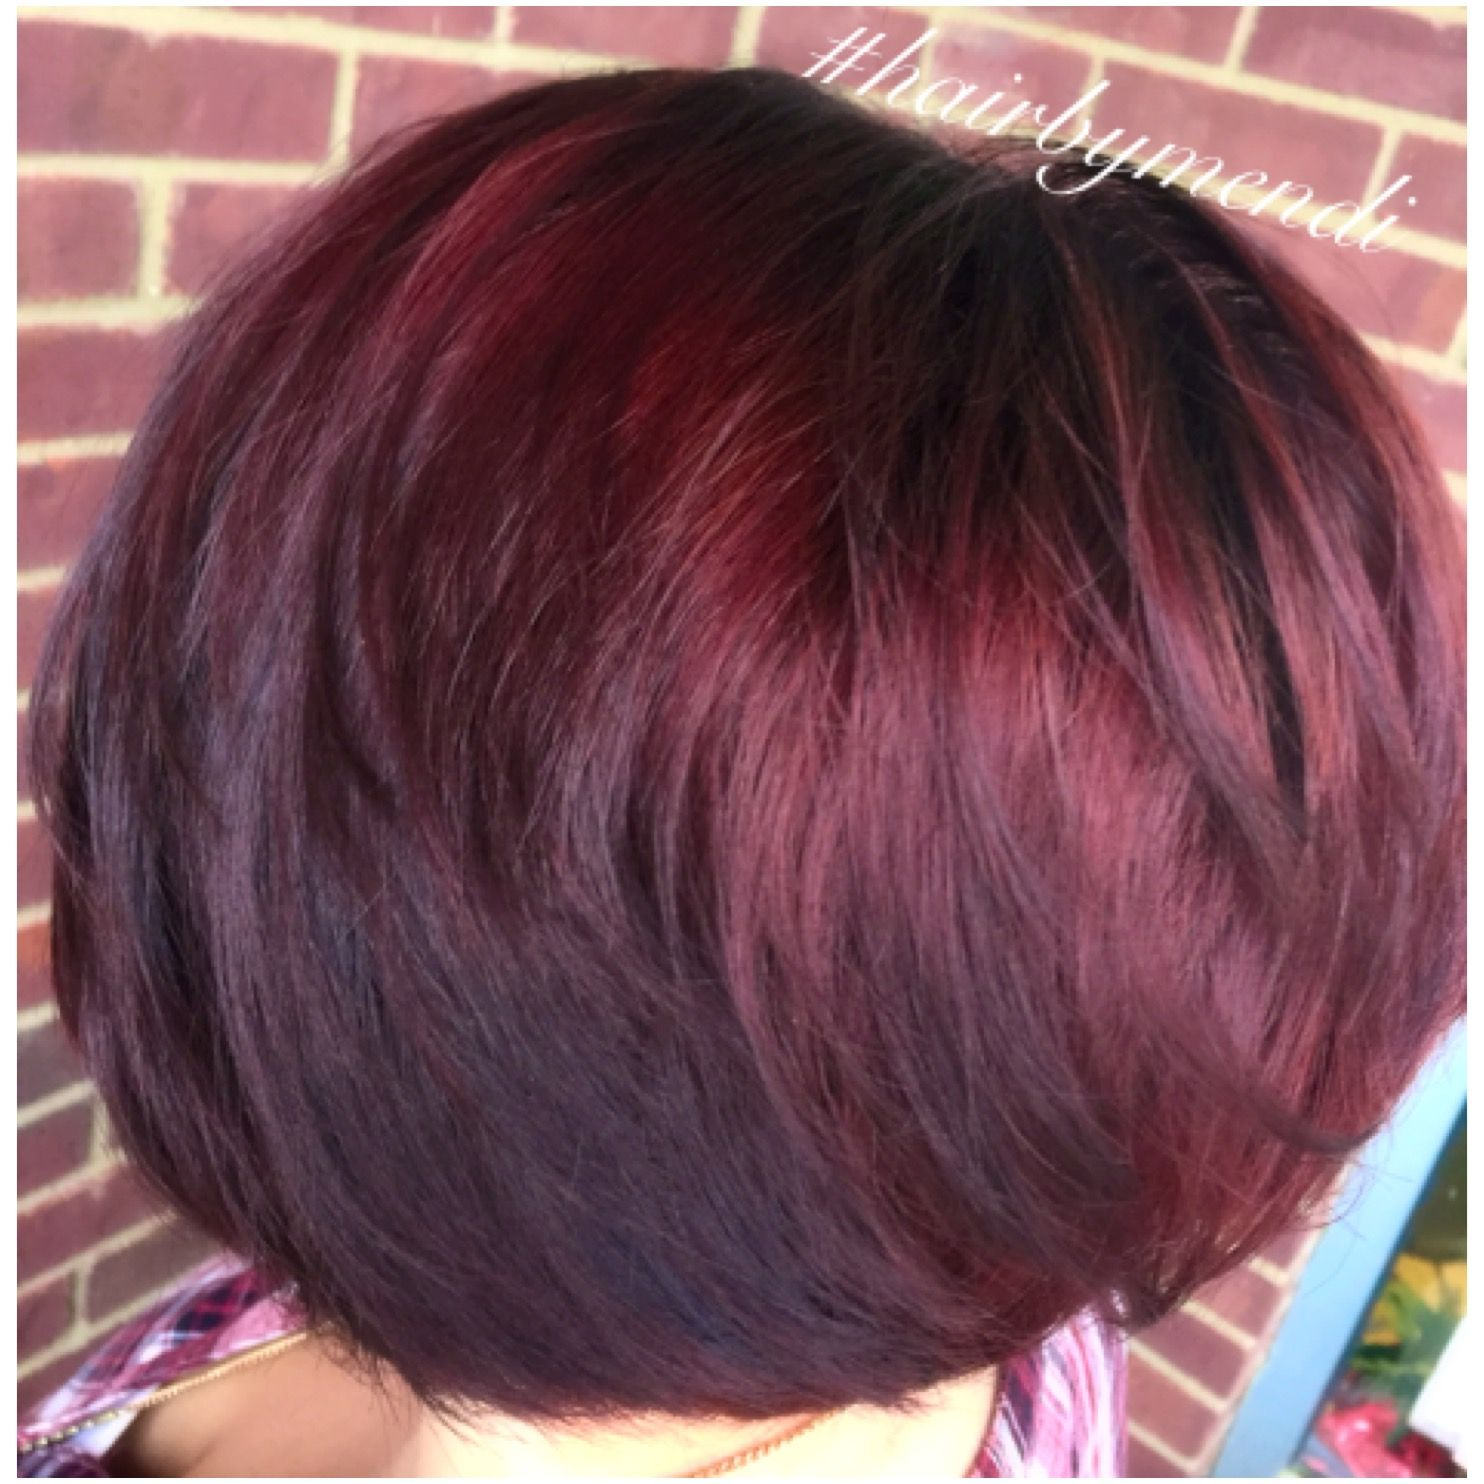 Hairspalafayette fall color redheads red hair pinterest